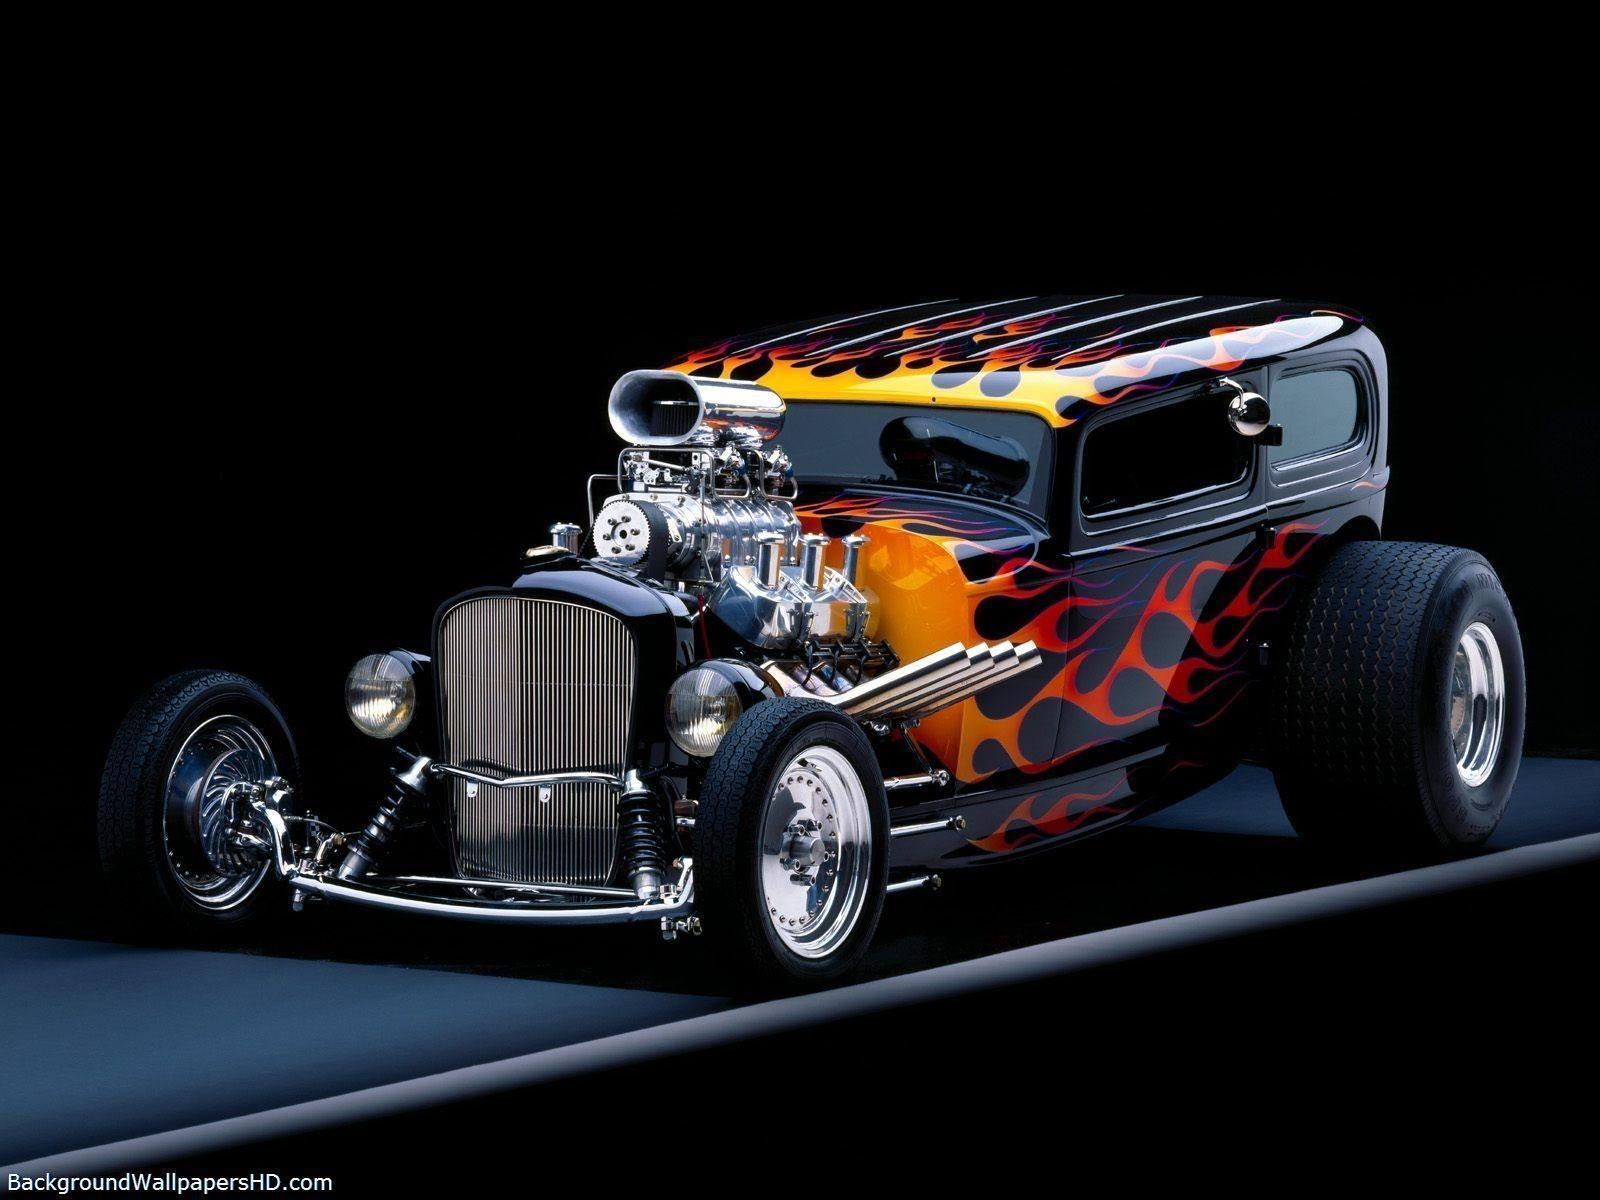 Cool Car Wallpapers Hd Backgrounds 1600x1200PX ~ Wallpaper Car ...